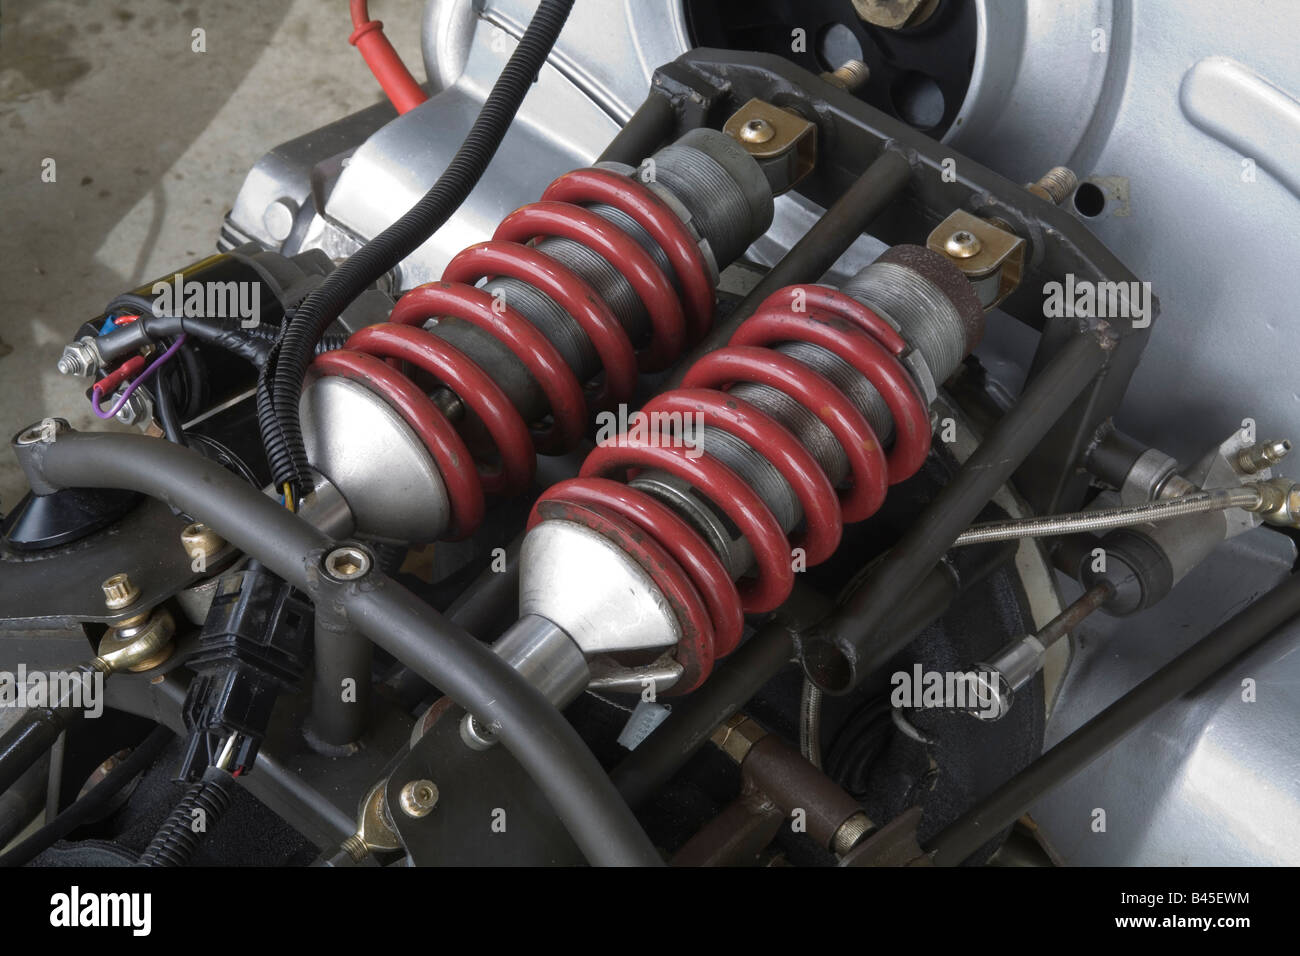 Suspension set up with coil over shock absorbers on an open wheel club level motorsport race car - Stock Image